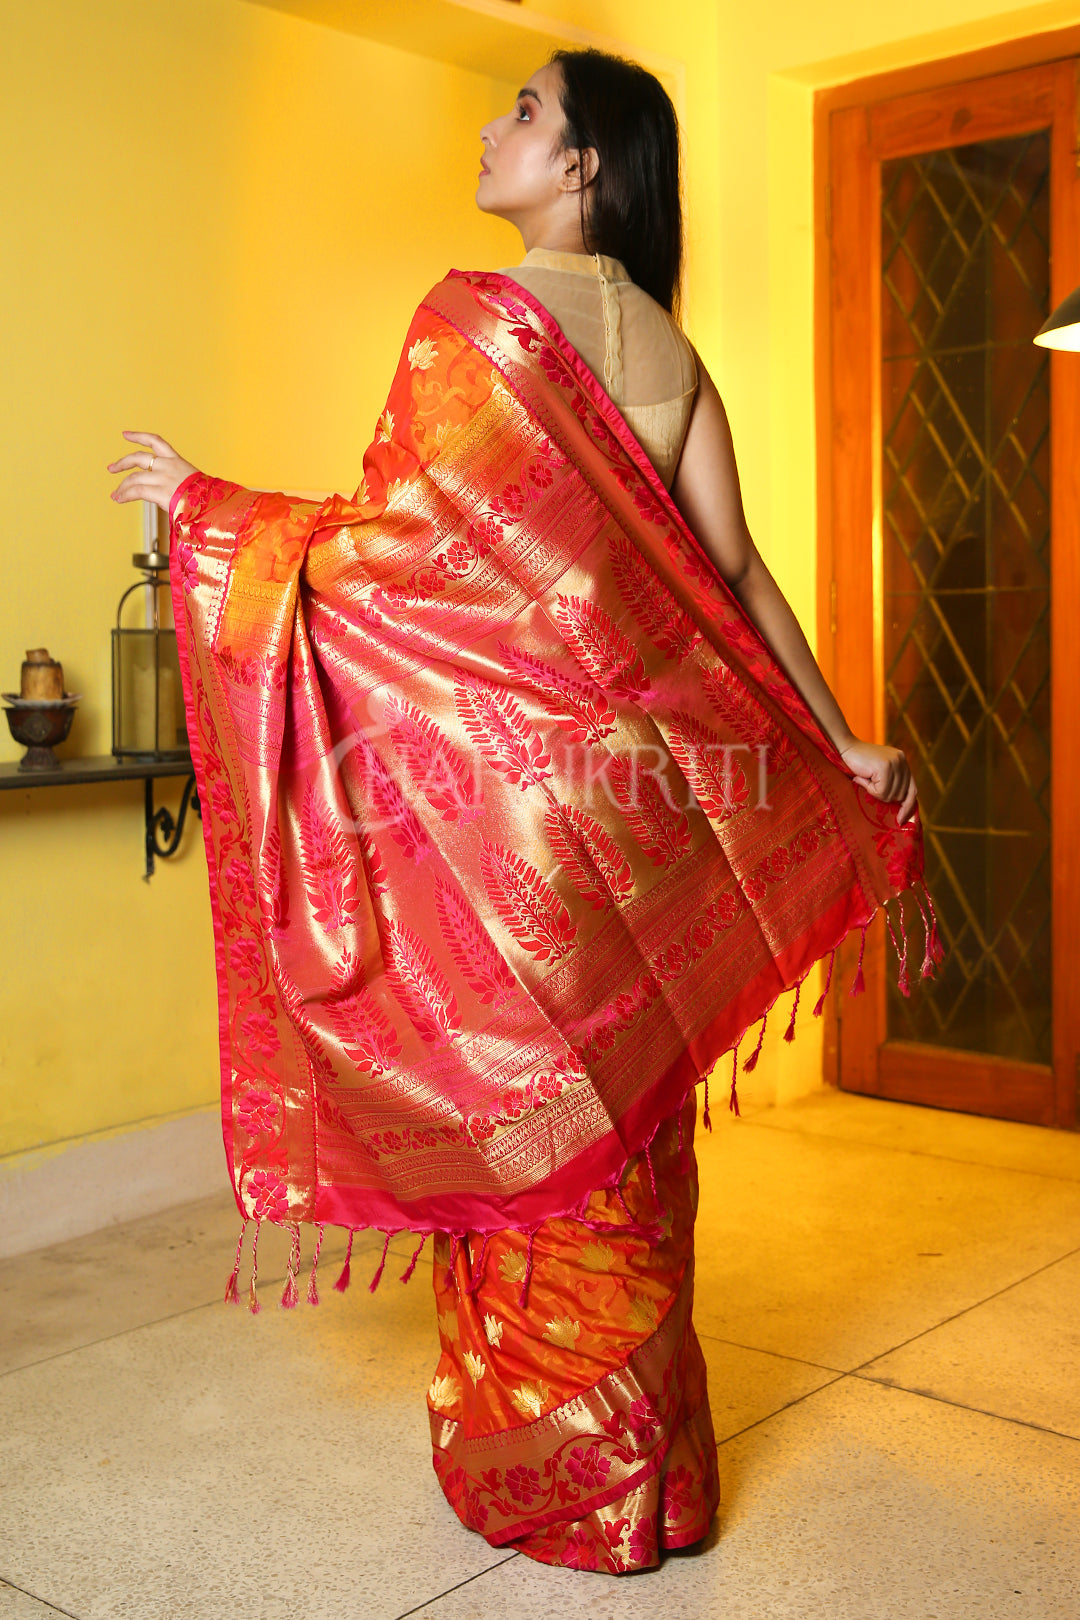 Fiery Orange Dual Tone Woven Patola Saree With Golden Pallu - Charukriti.co.in